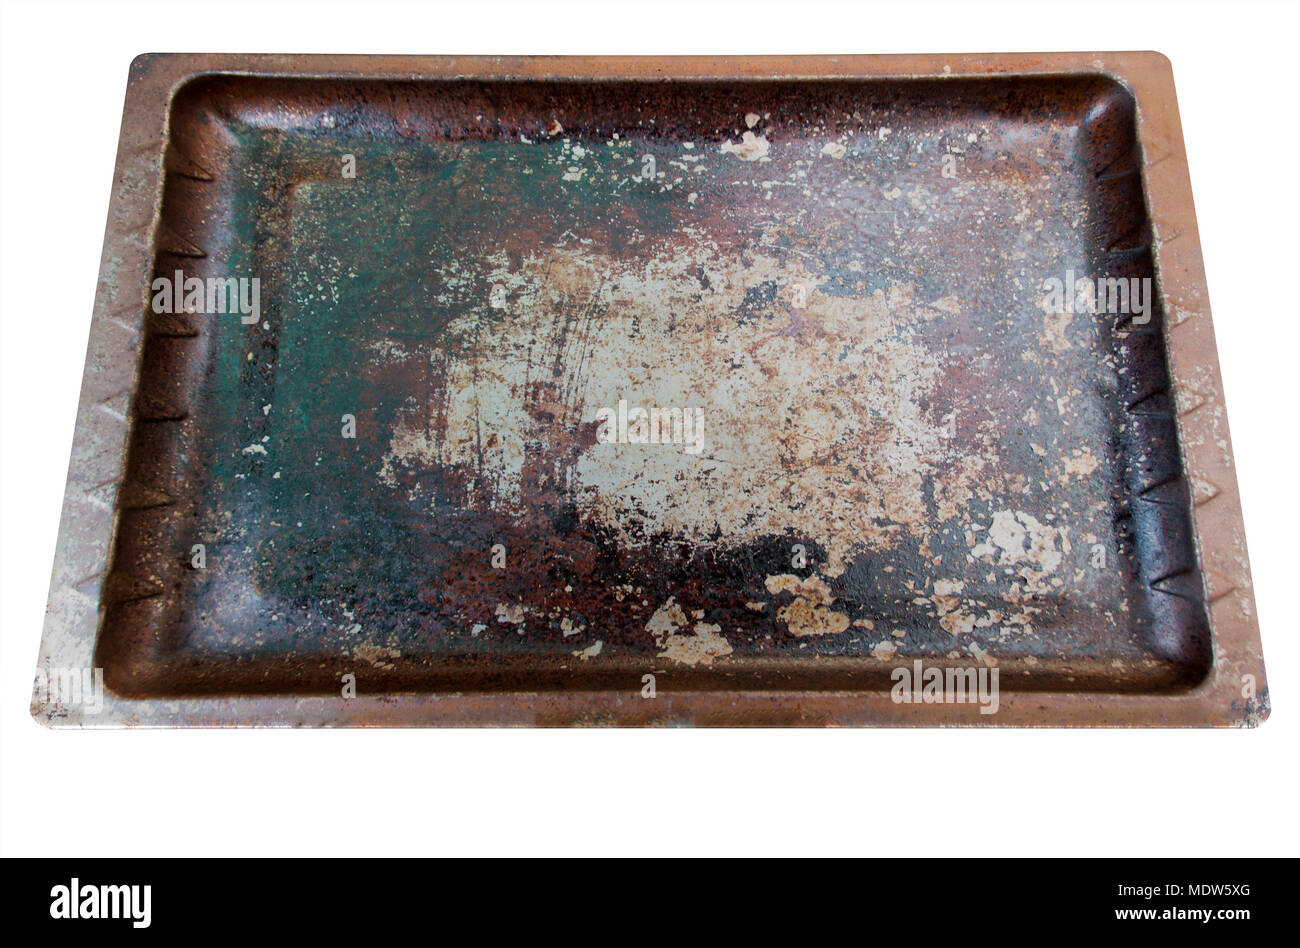 A regular flat worn and tarnished metal oven baking tray on an isolated white studio background - 3D render - Stock Image